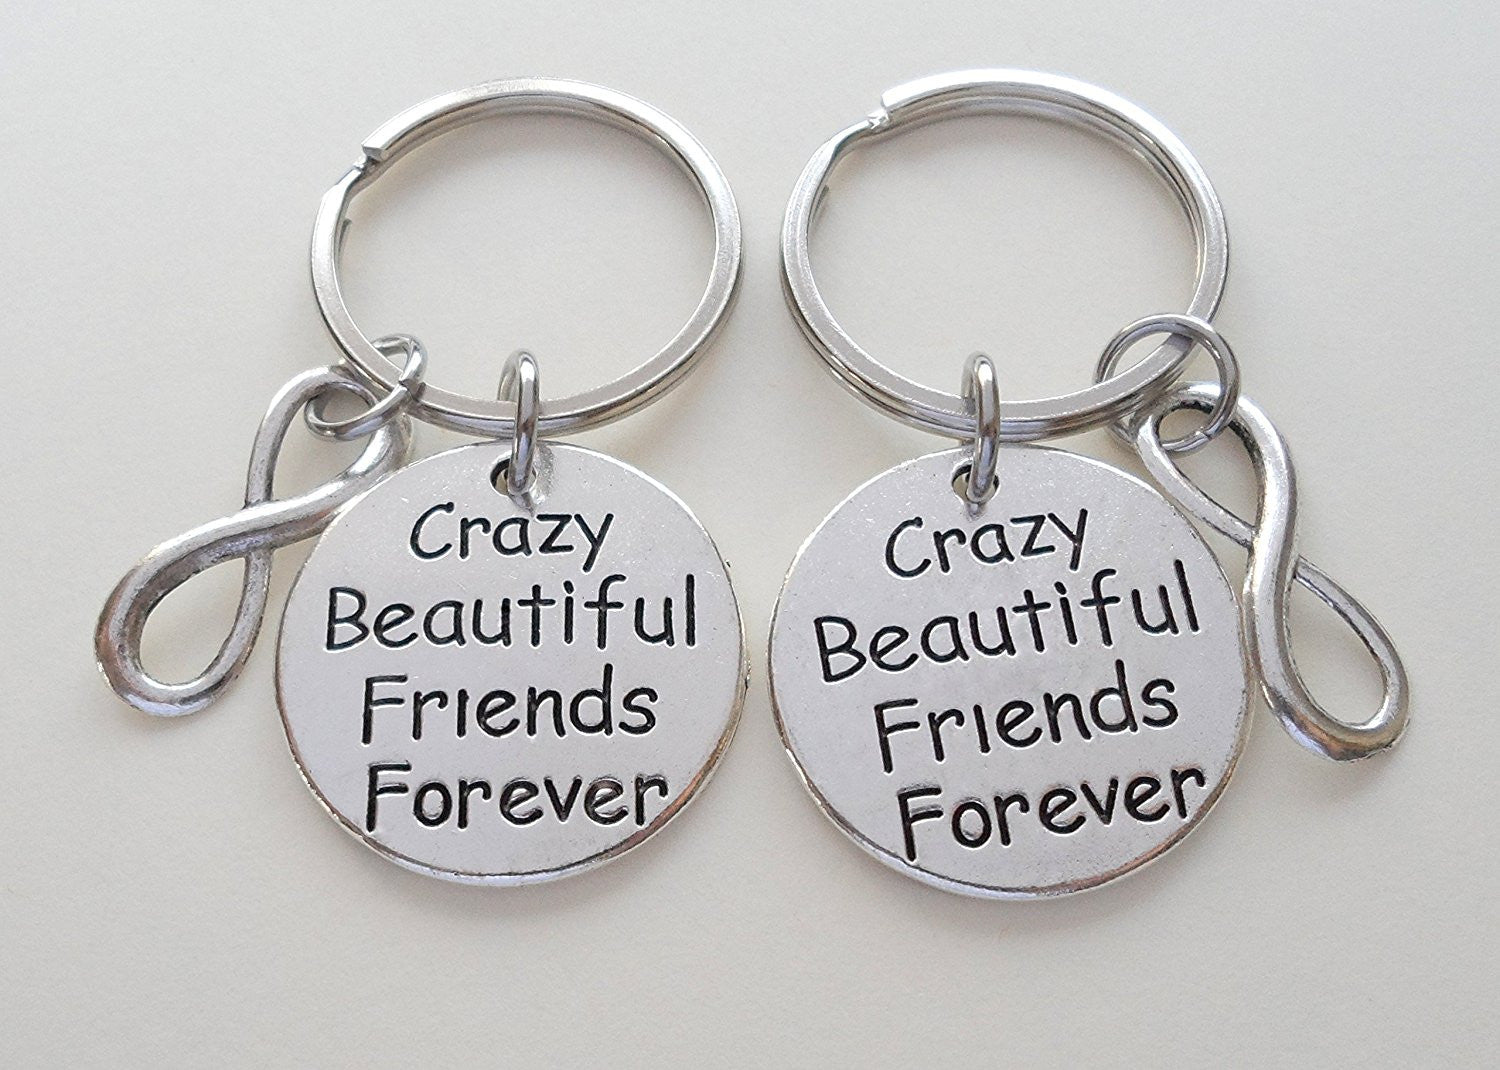 Crazy Beautiful Friends Forever Keychains With Infinity Symbol